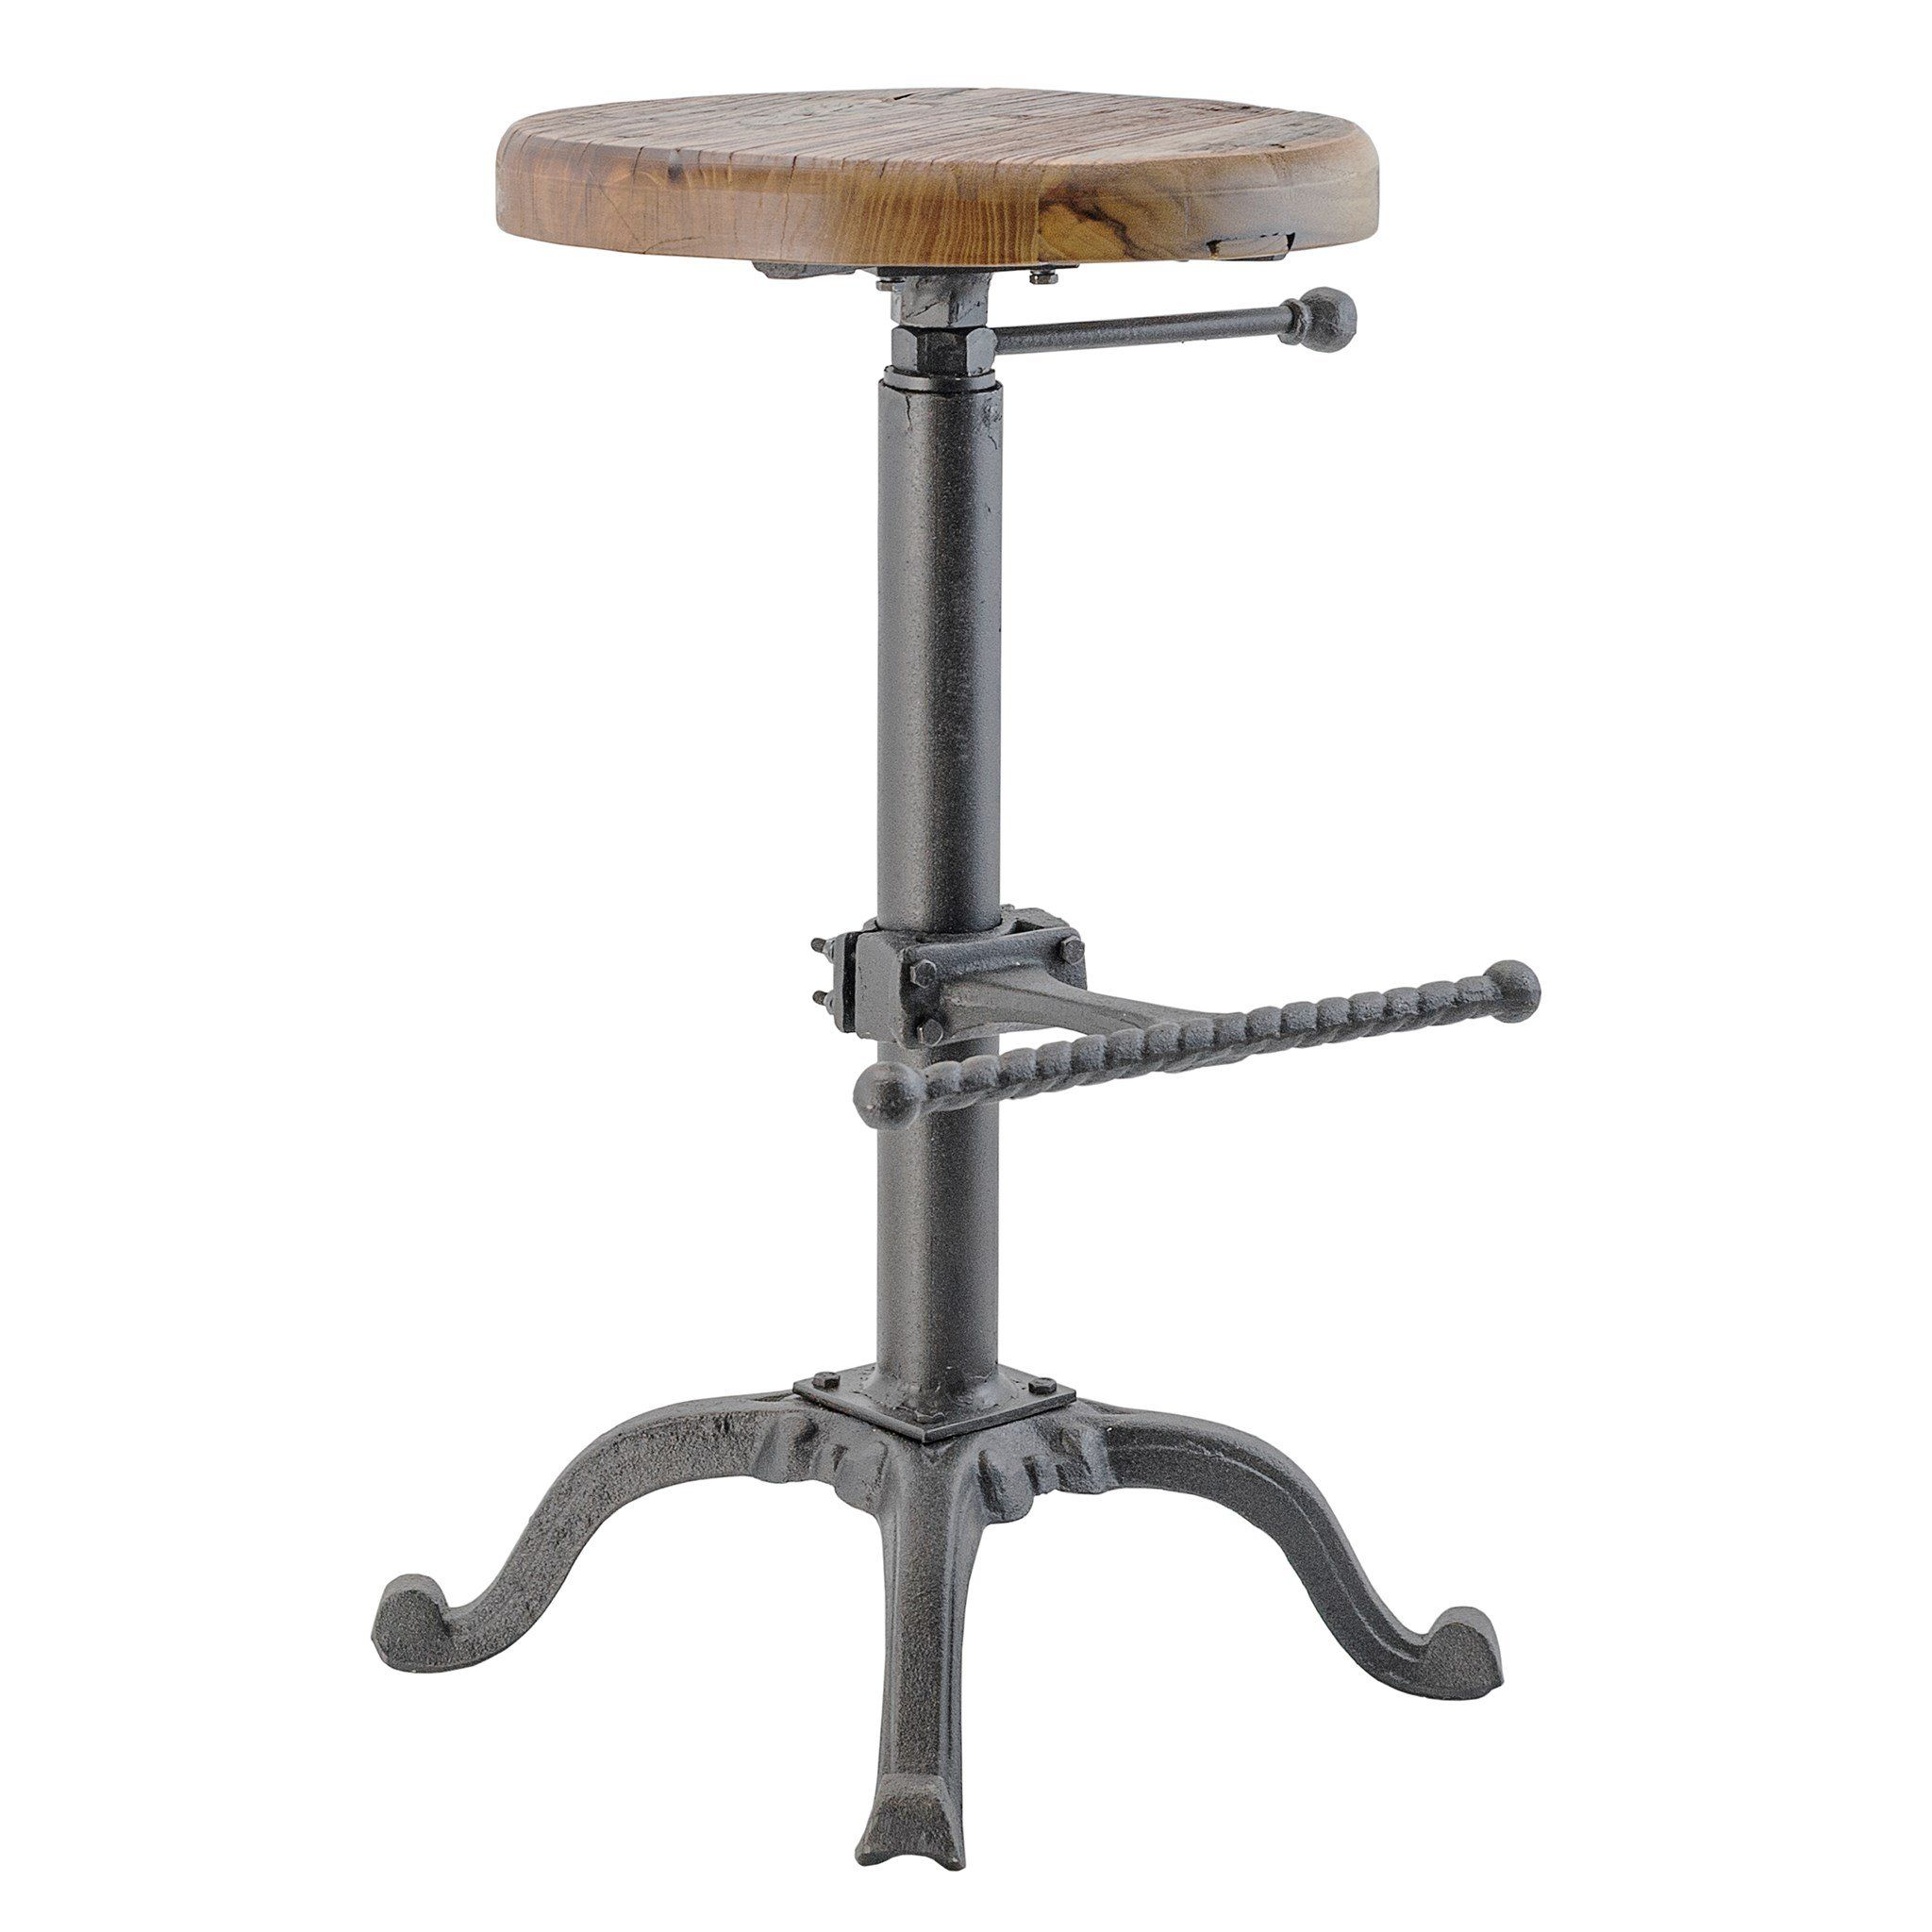 Industrial Cast Iron And Solid Wood Adjustable Counter Bar Stool With Footrest Adjustable Bar Stools Counter Bar Stools Bar Stools